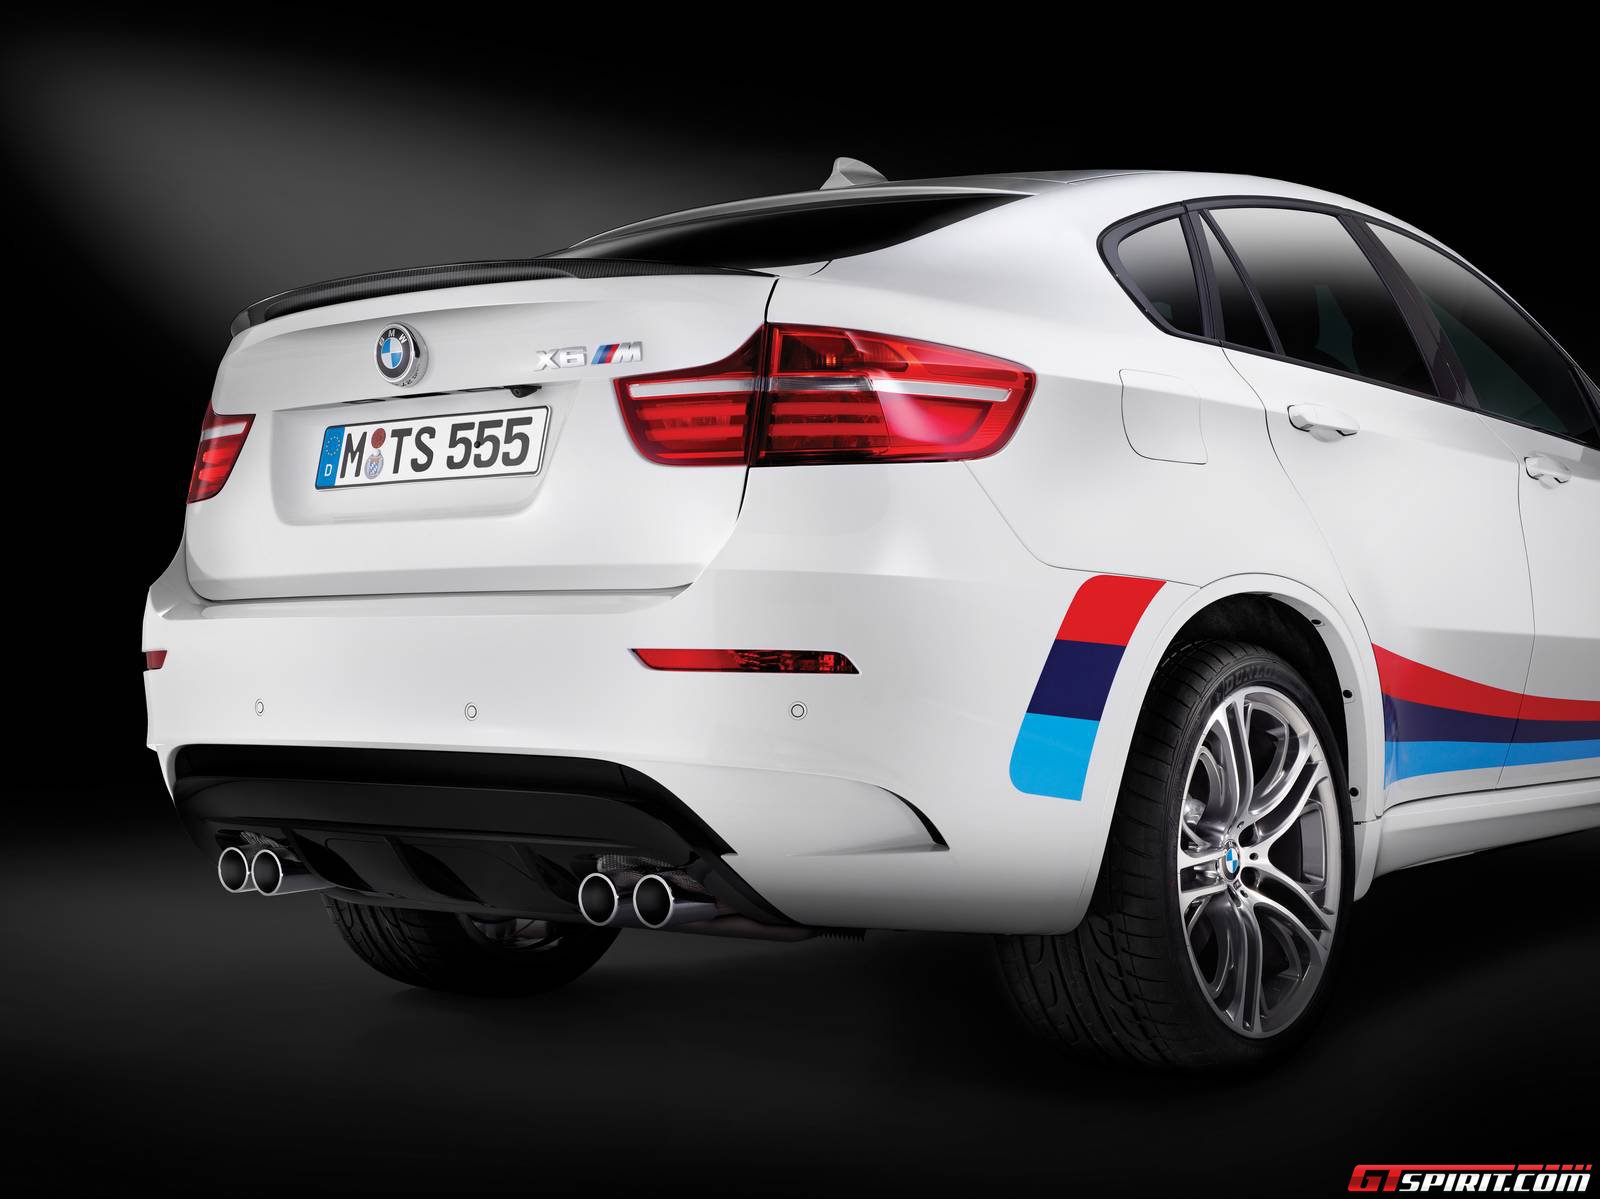 official bmw x6 m design edition gtspirit. Black Bedroom Furniture Sets. Home Design Ideas